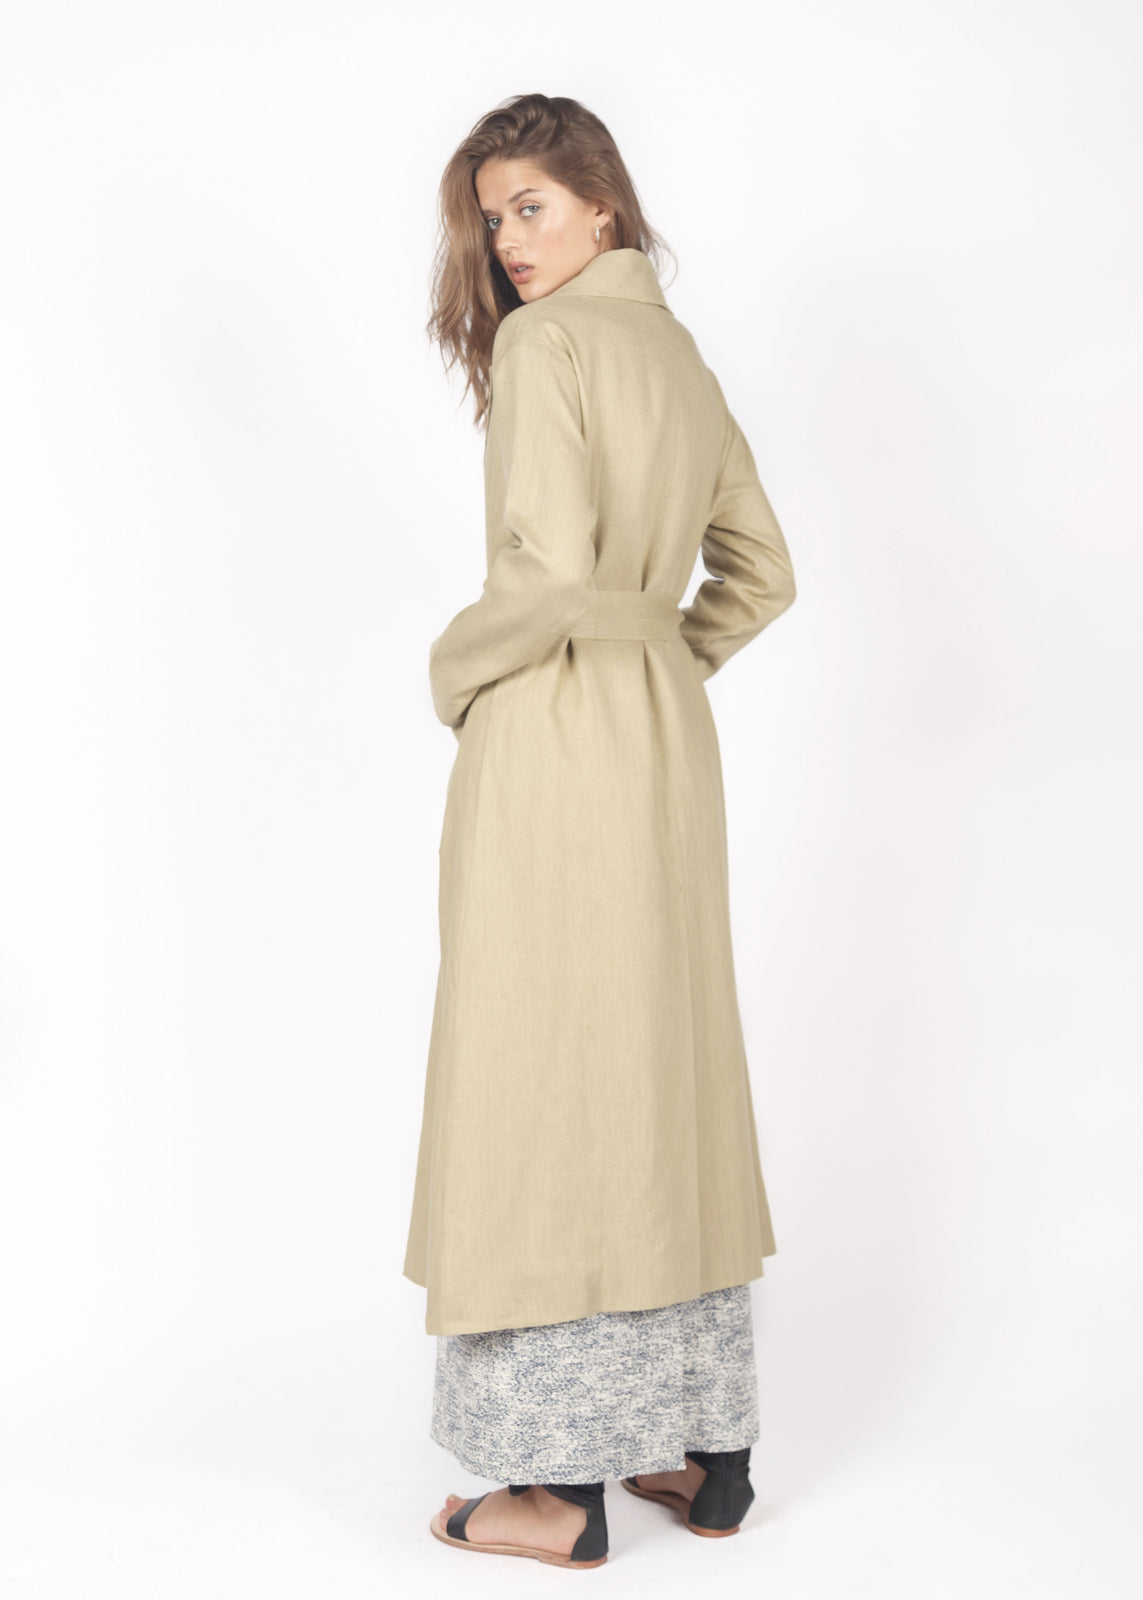 PISTACHIO TRAVEL COAT